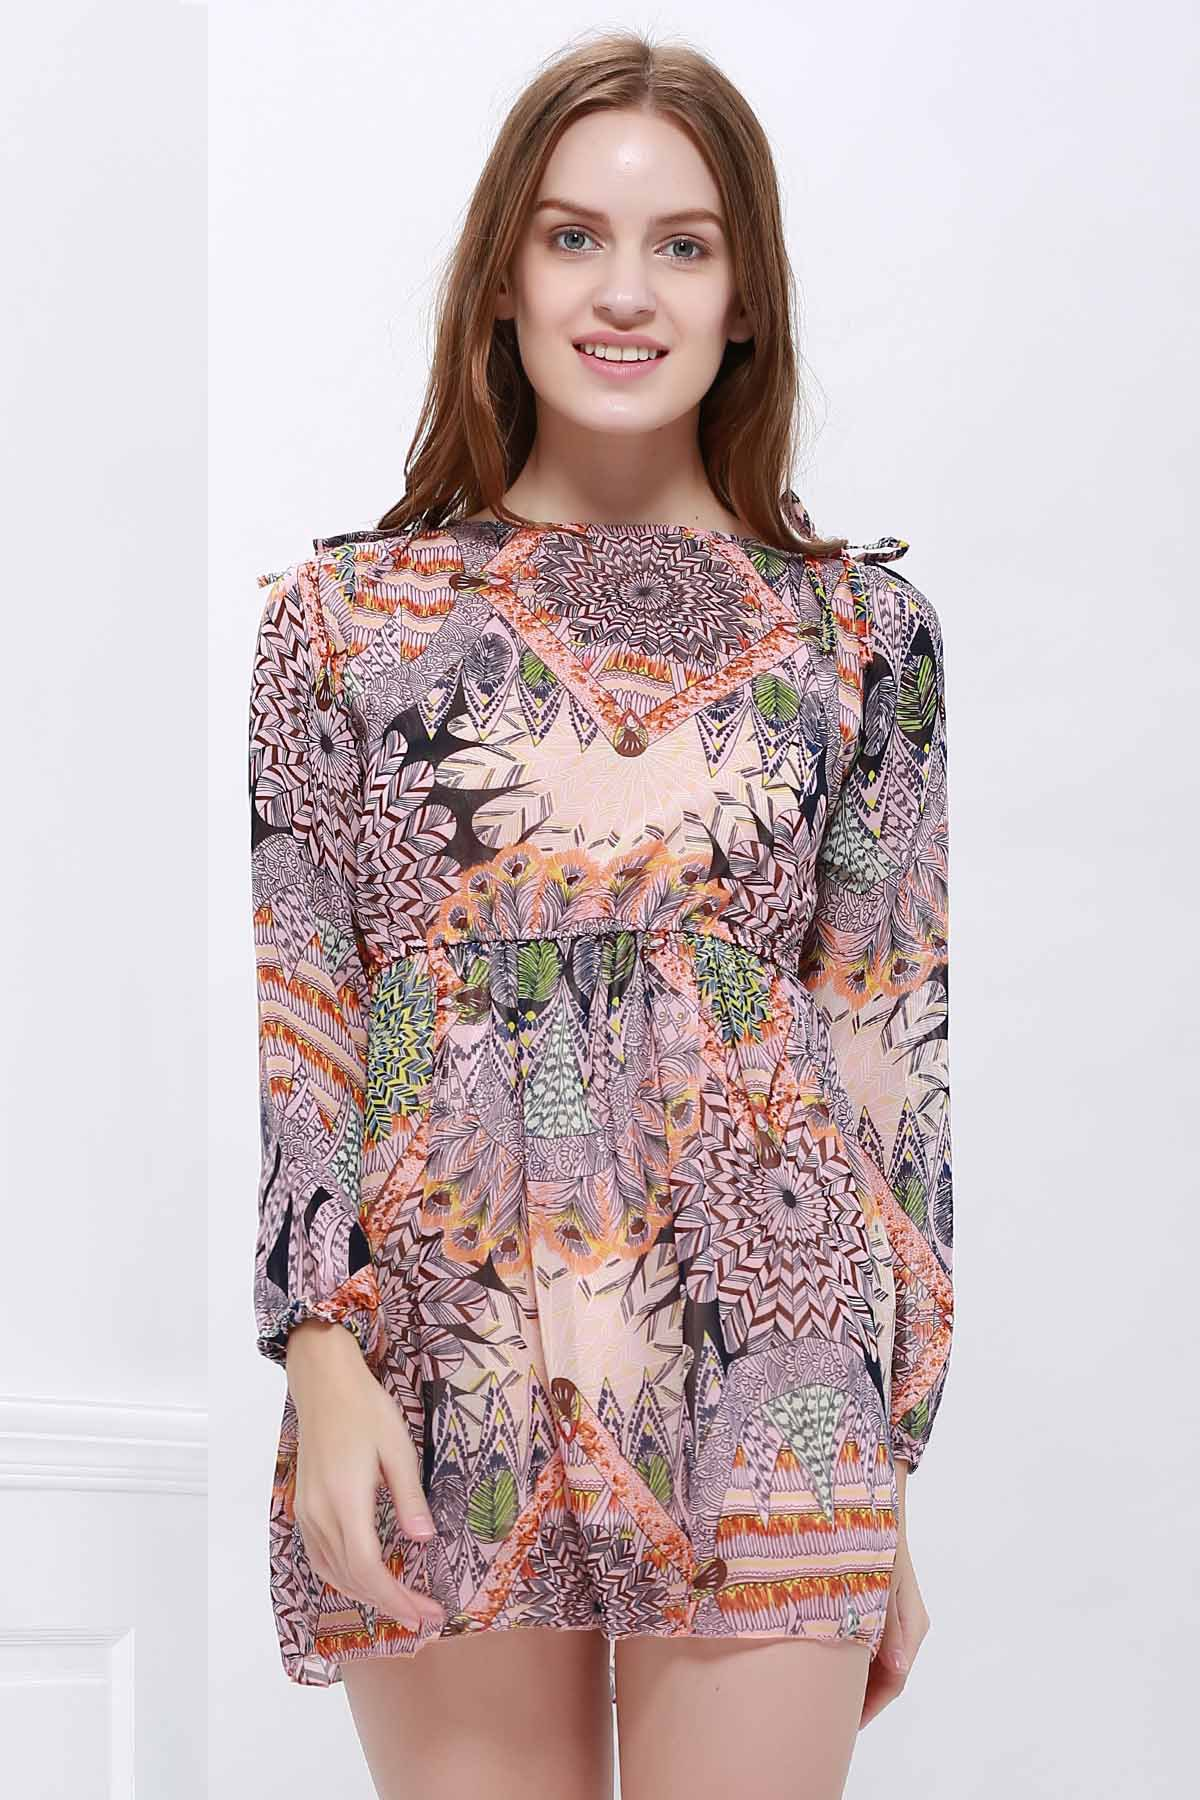 Printed Mini Chiffon DressWOMEN<br><br>Size: ONE SIZE; Color: COLORMIX; Style: Casual; Material: Polyester; Fabric Type: Chiffon; Silhouette: Straight; Dresses Length: Mini; Neckline: Round Collar; Sleeve Length: Long Sleeves; Pattern Type: Print; With Belt: No; Season: Spring,Summer; Weight: 0.2110kg; Package Contents: 1 x Dress;